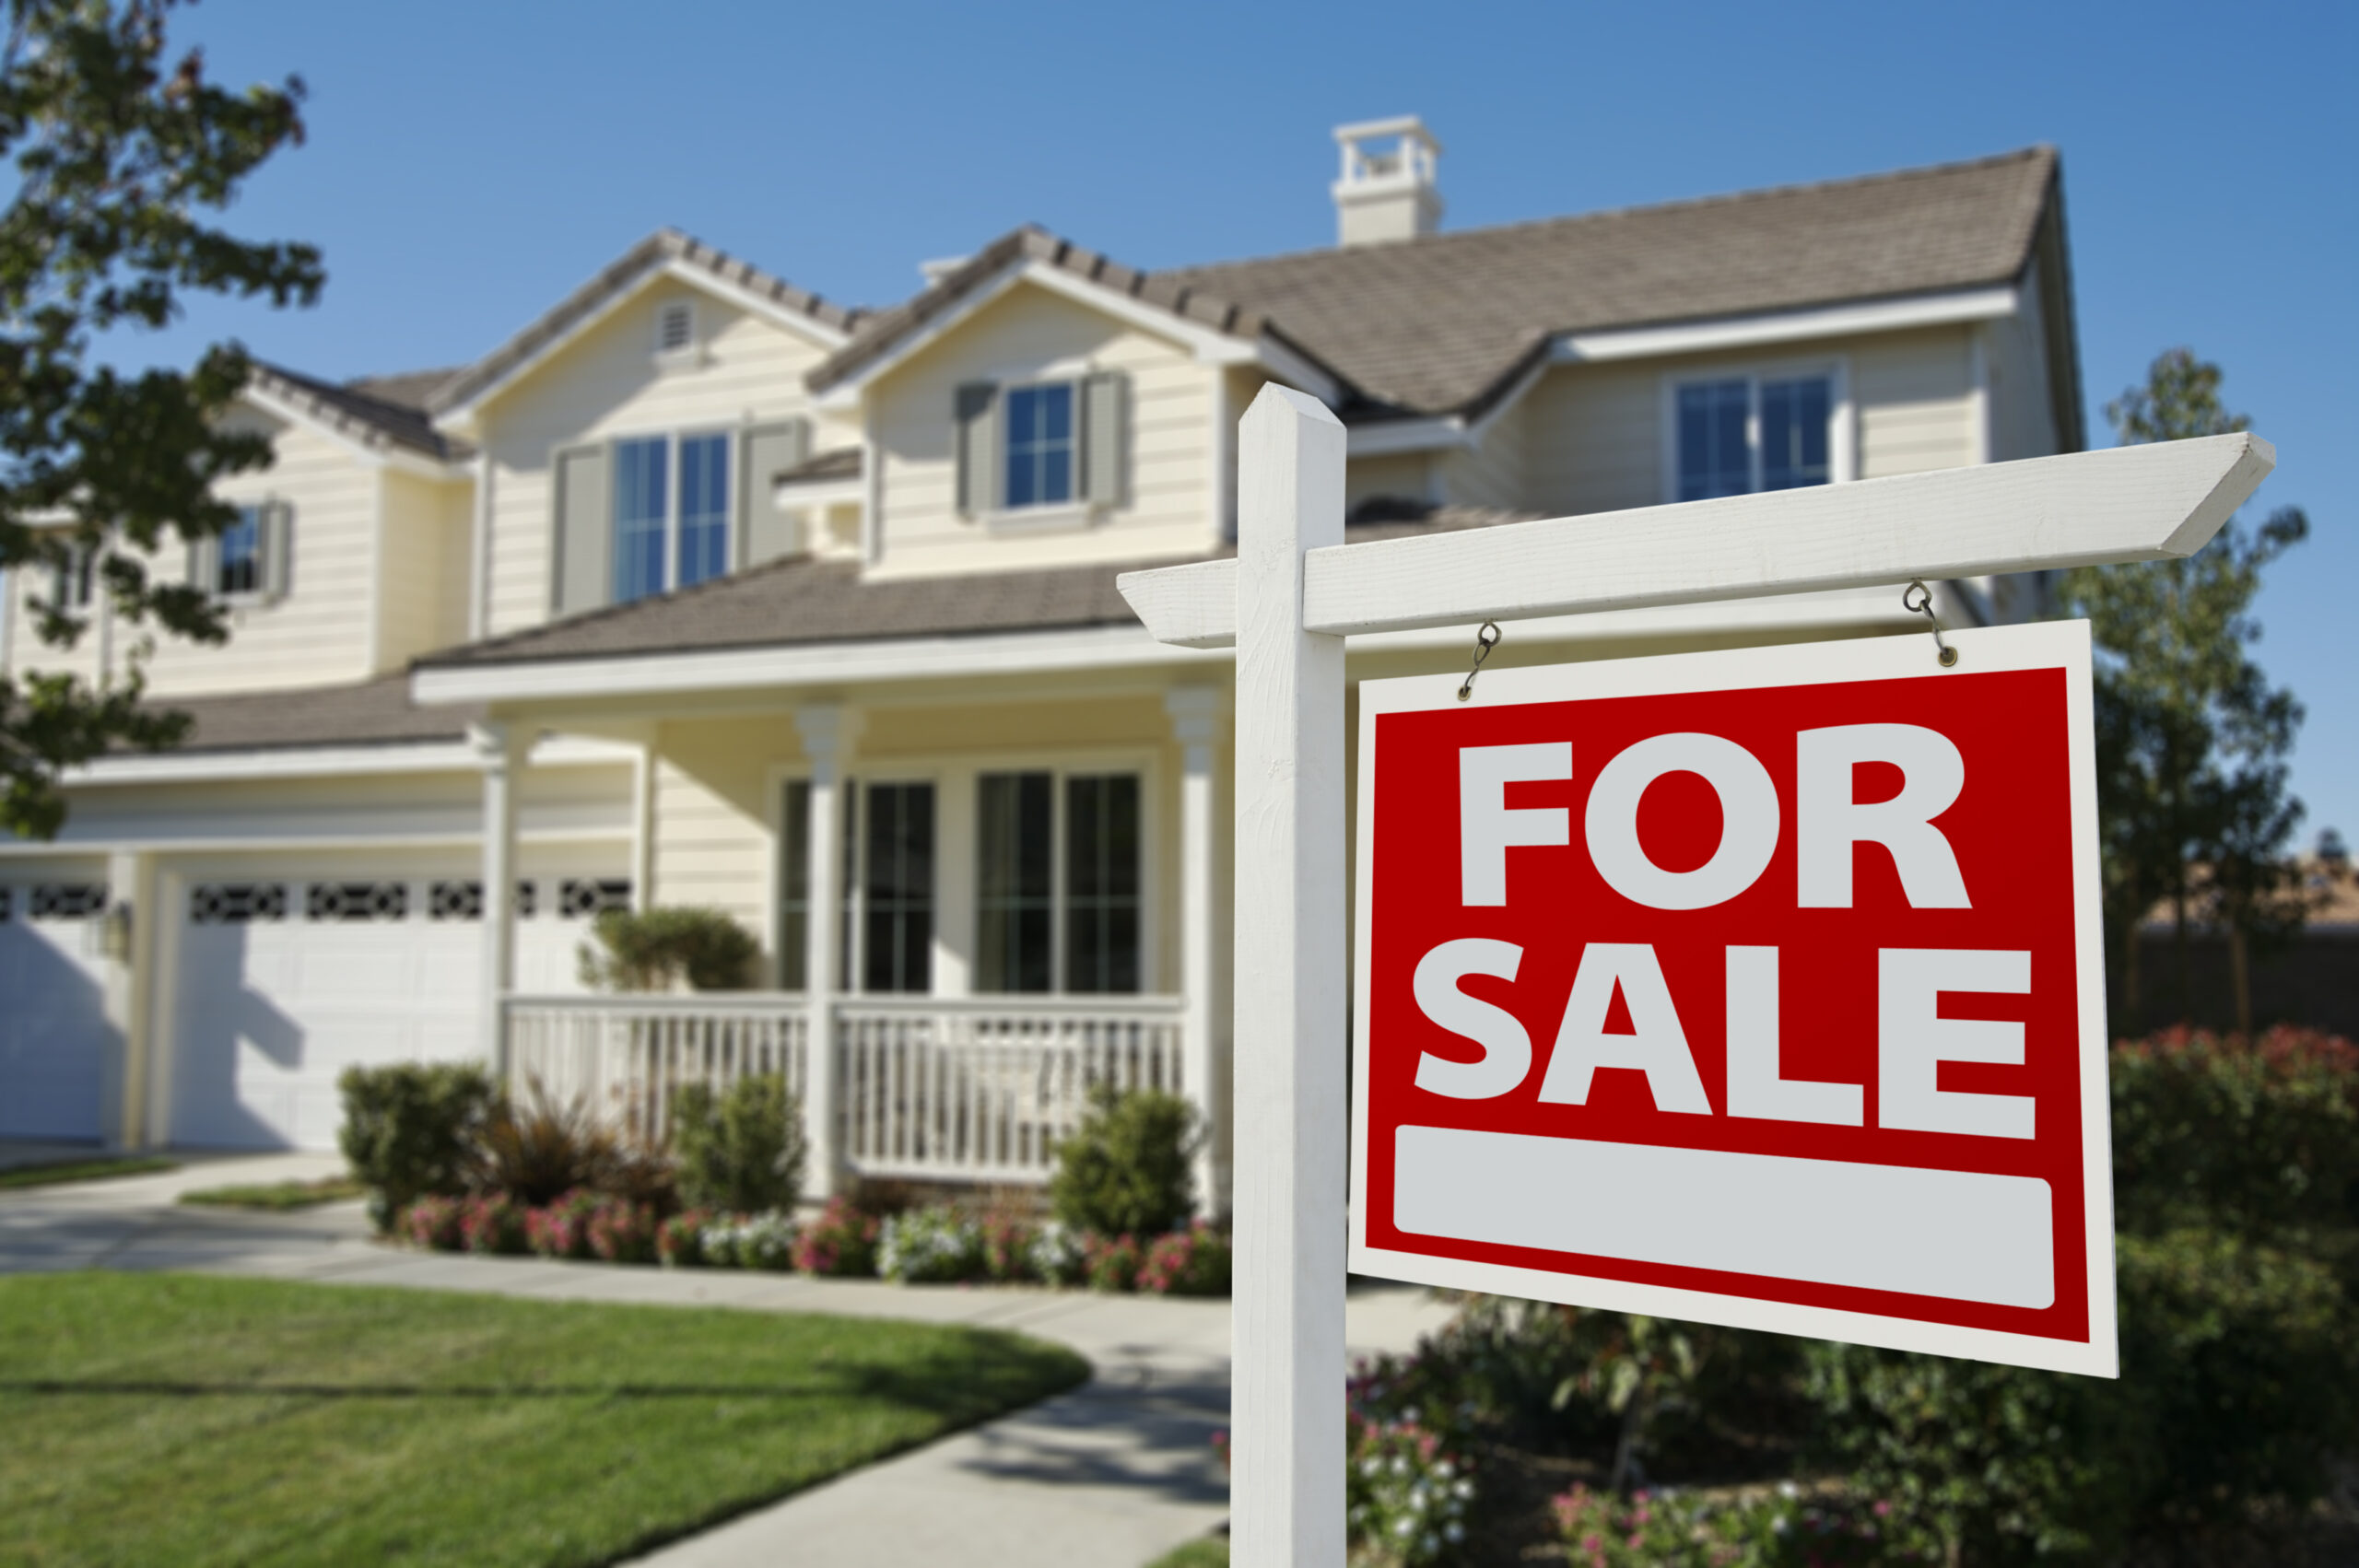 House for sale near me, How Can You Locate a House for Sale Near Me in Corona Times?